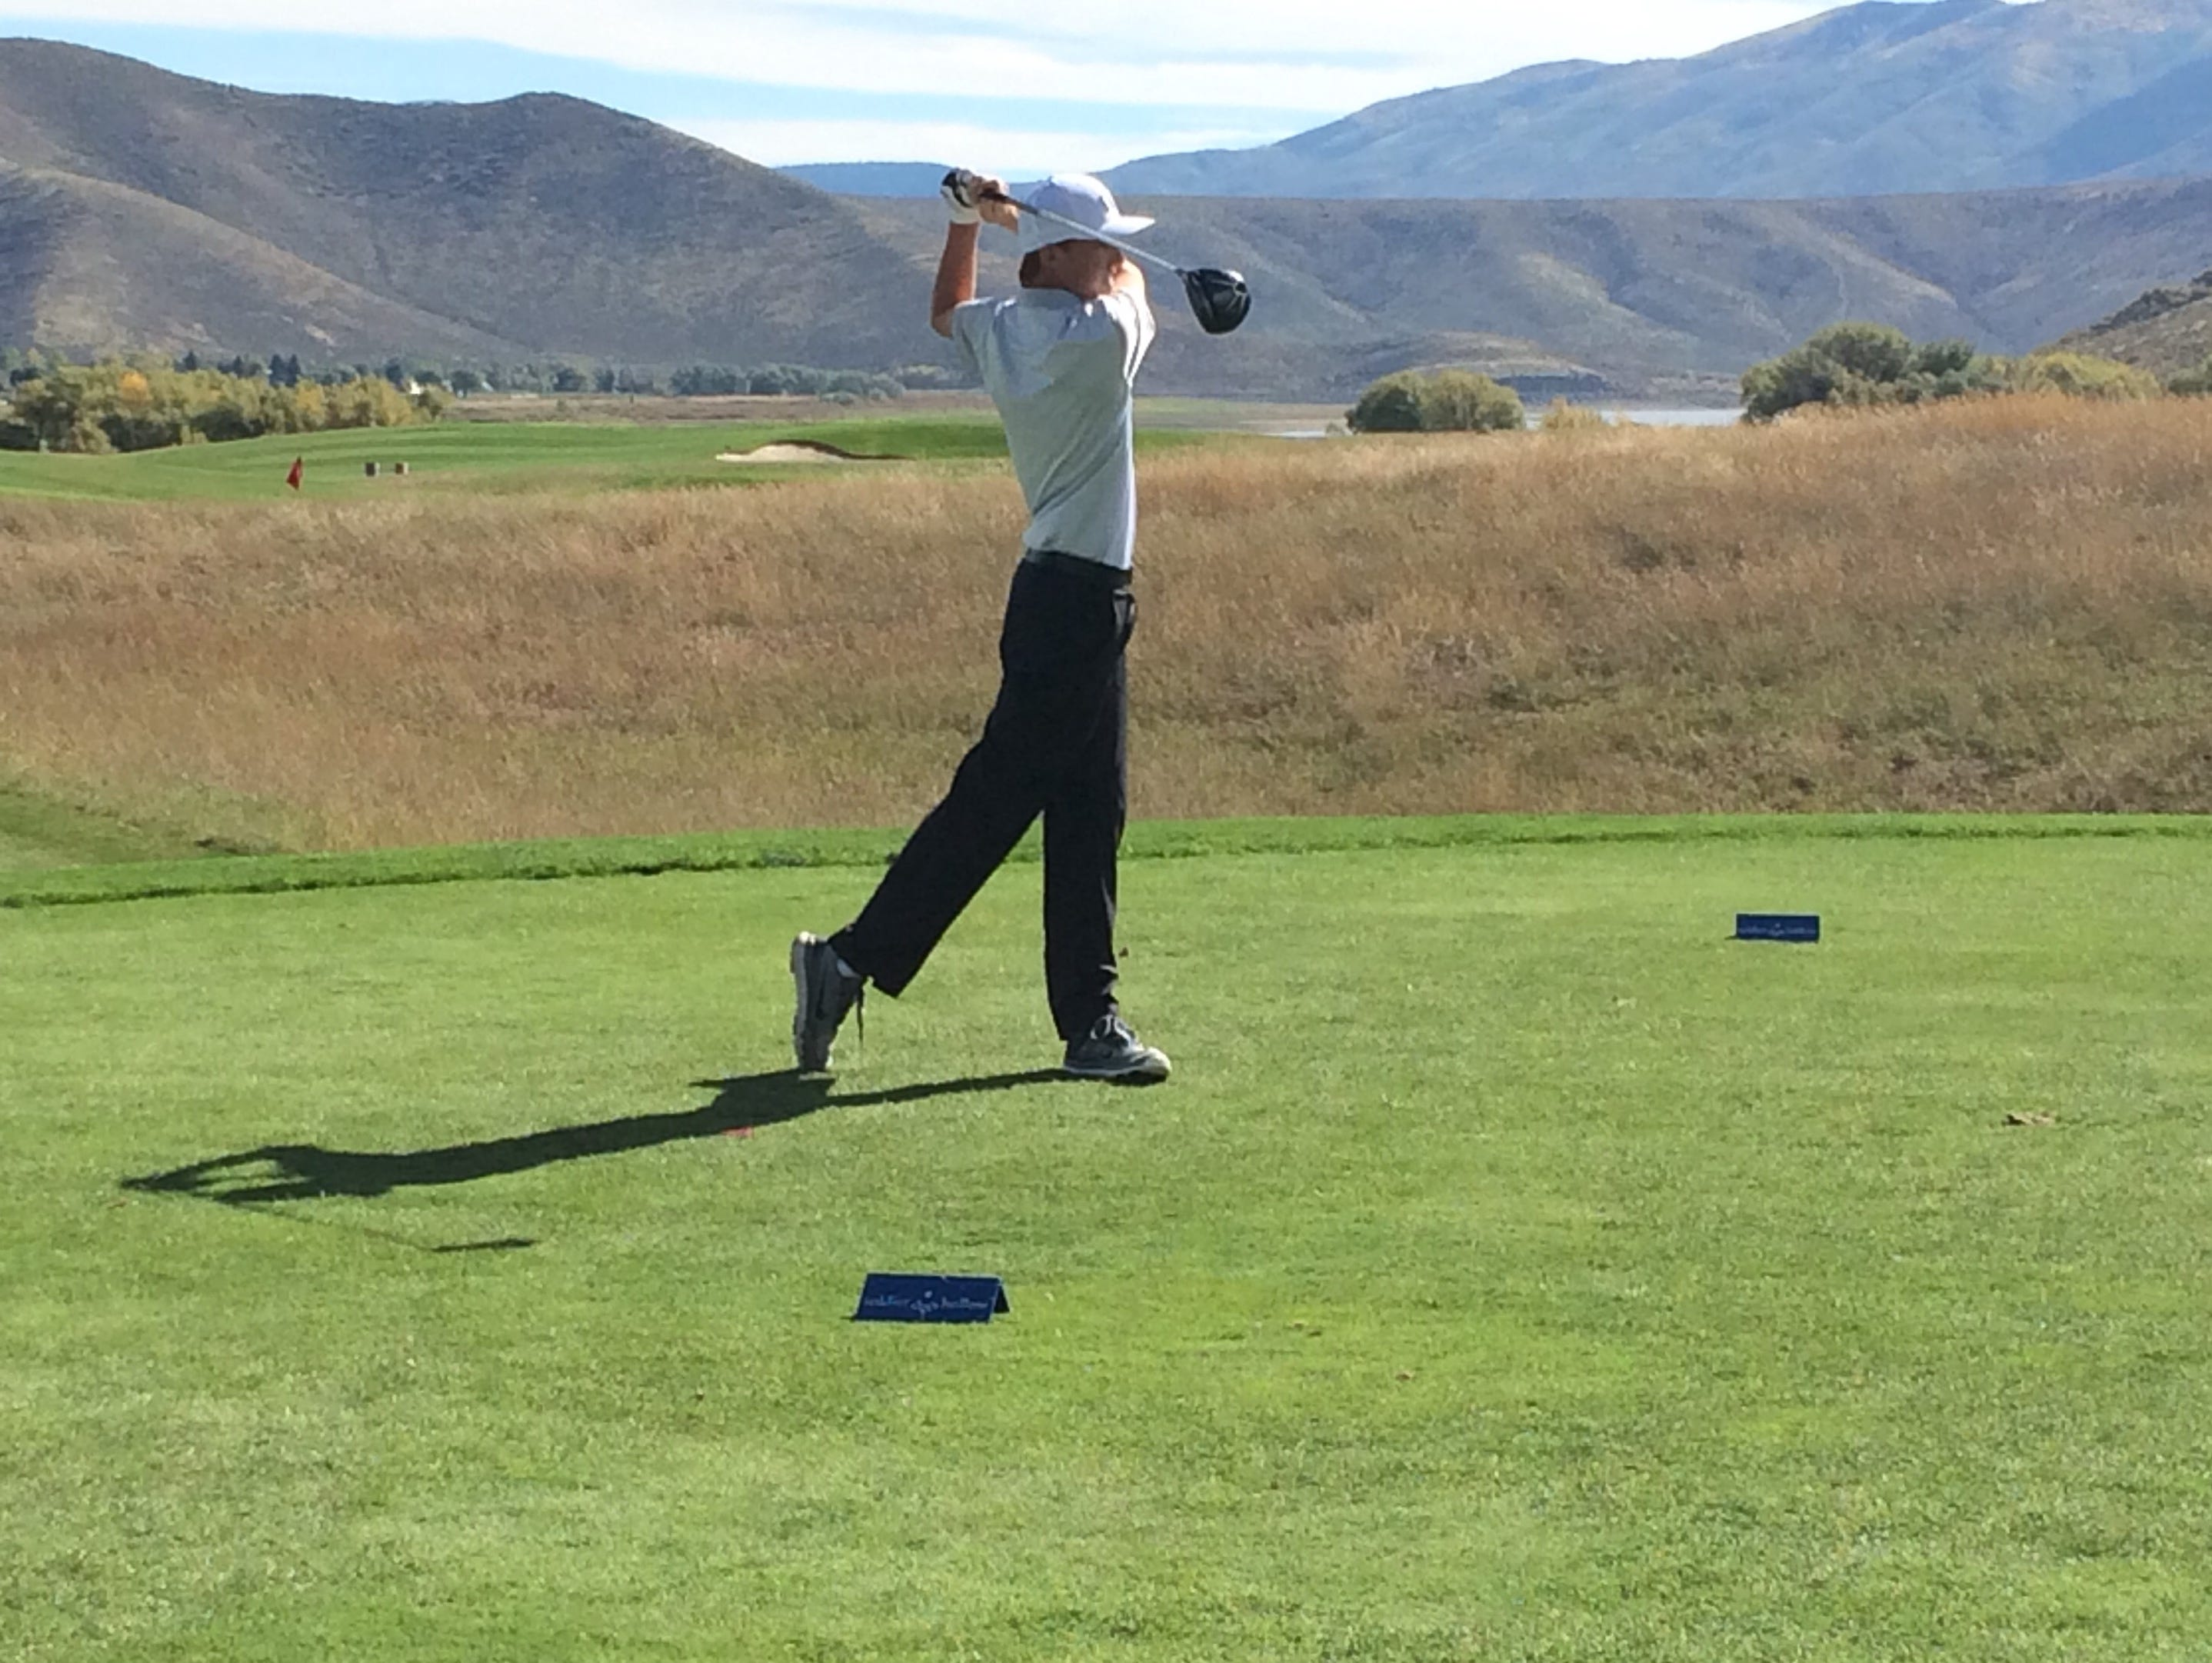 The second and final day of the 3A state tournament took place at Soldier Hollow on Wednesday. Pine View's Noah Schone finished third overall after shooting a two-day score of 137.